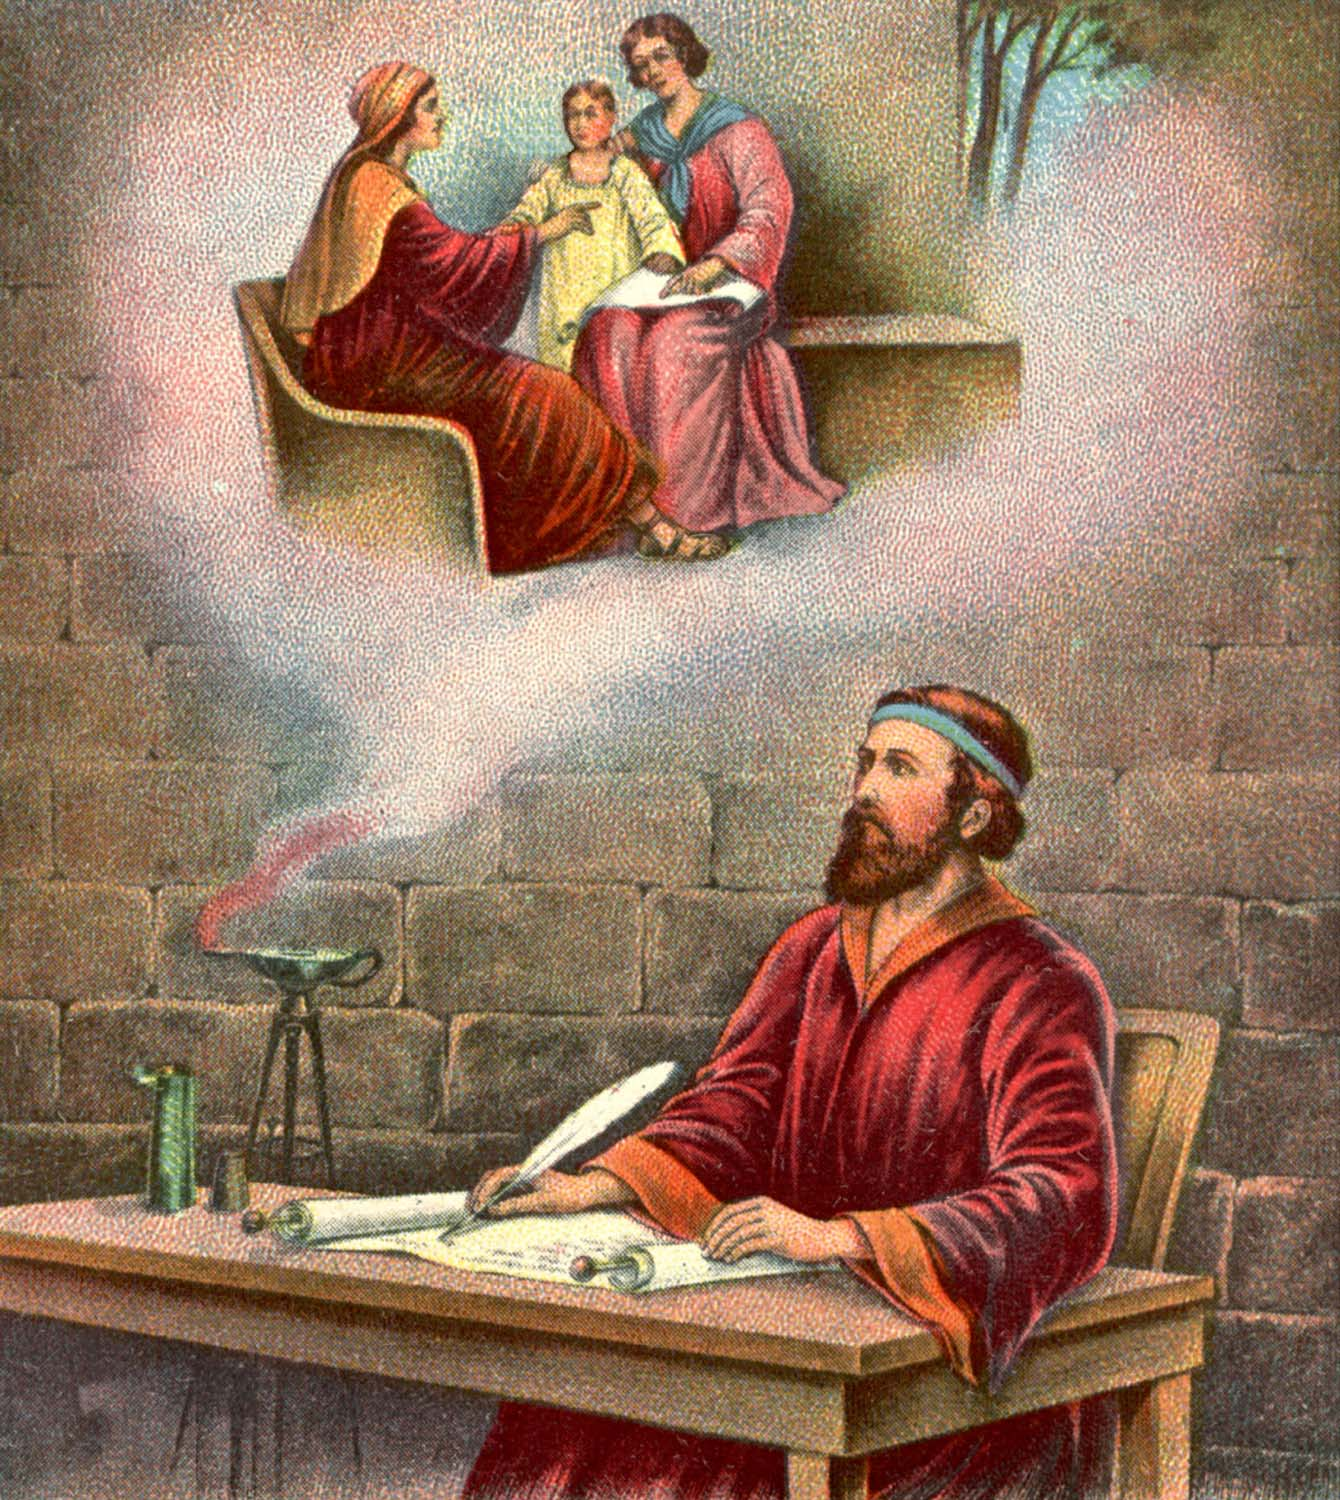 Bible story pictures online Bible Stories and Pictures - Hymns